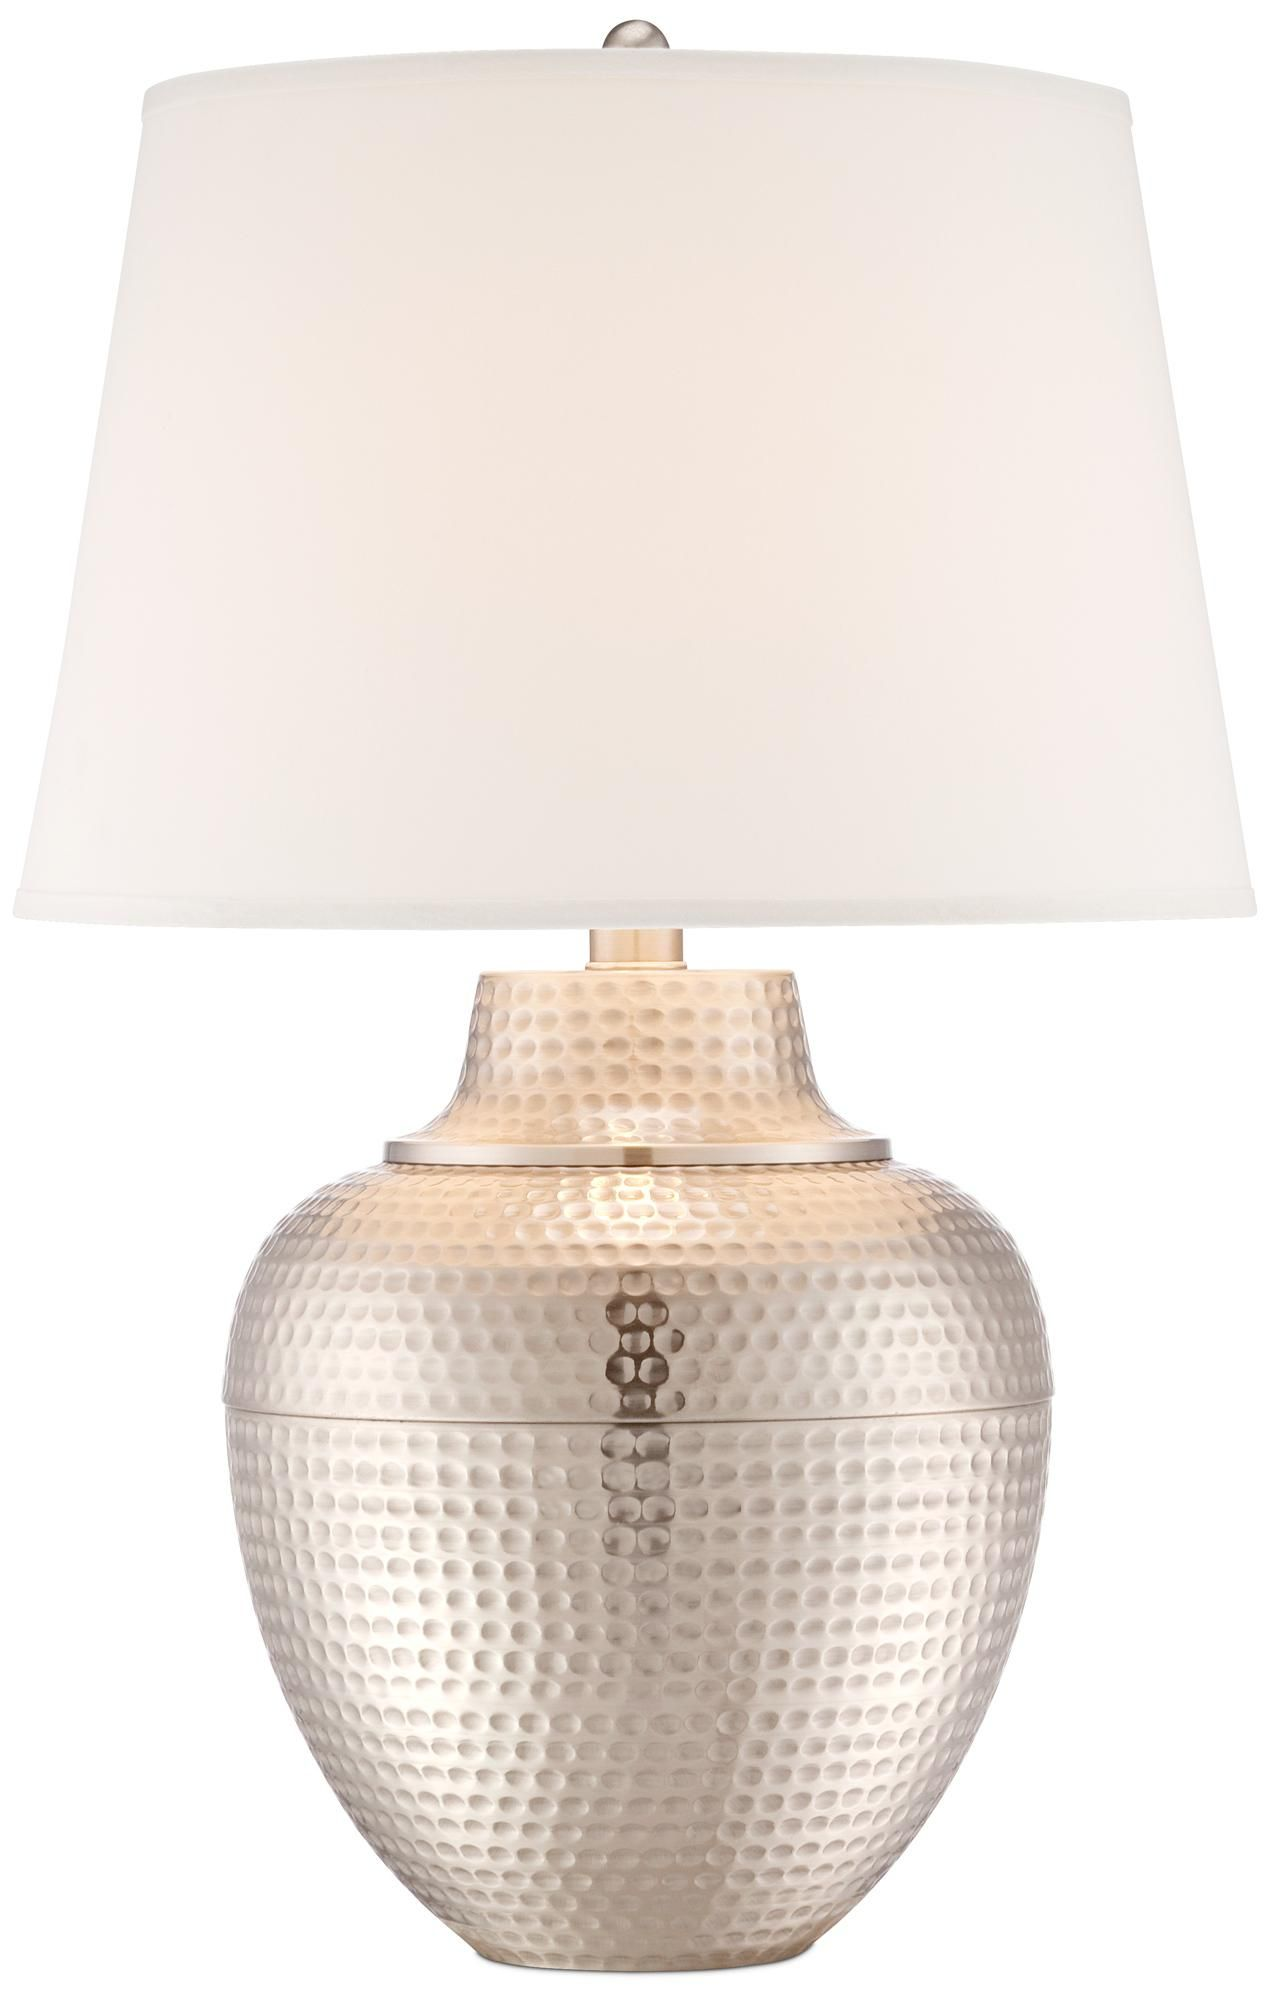 Brighton hammered pot brushed nickel table lamp style x4787 brighton hammered pot brushed nickel table lamp mozeypictures Image collections